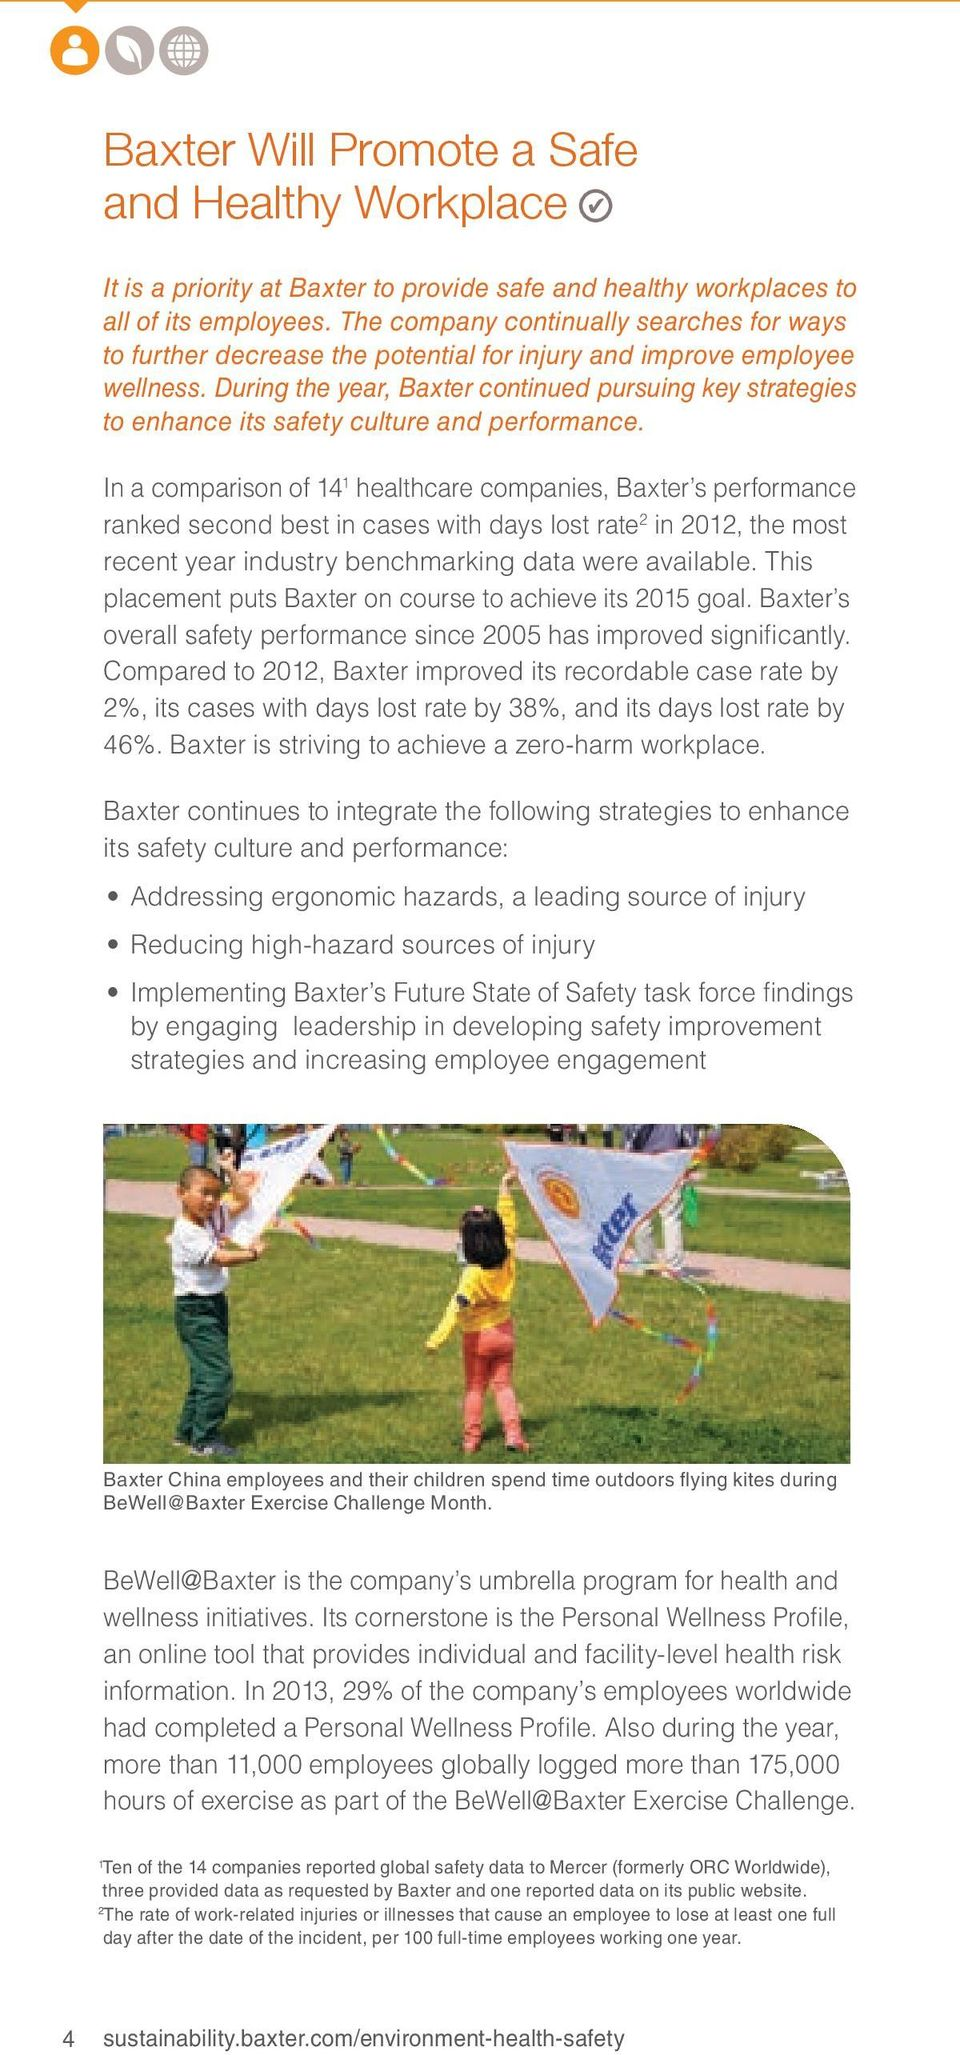 During the year, Baxter continued pursuing key strategies to enhance its safety culture and performance.